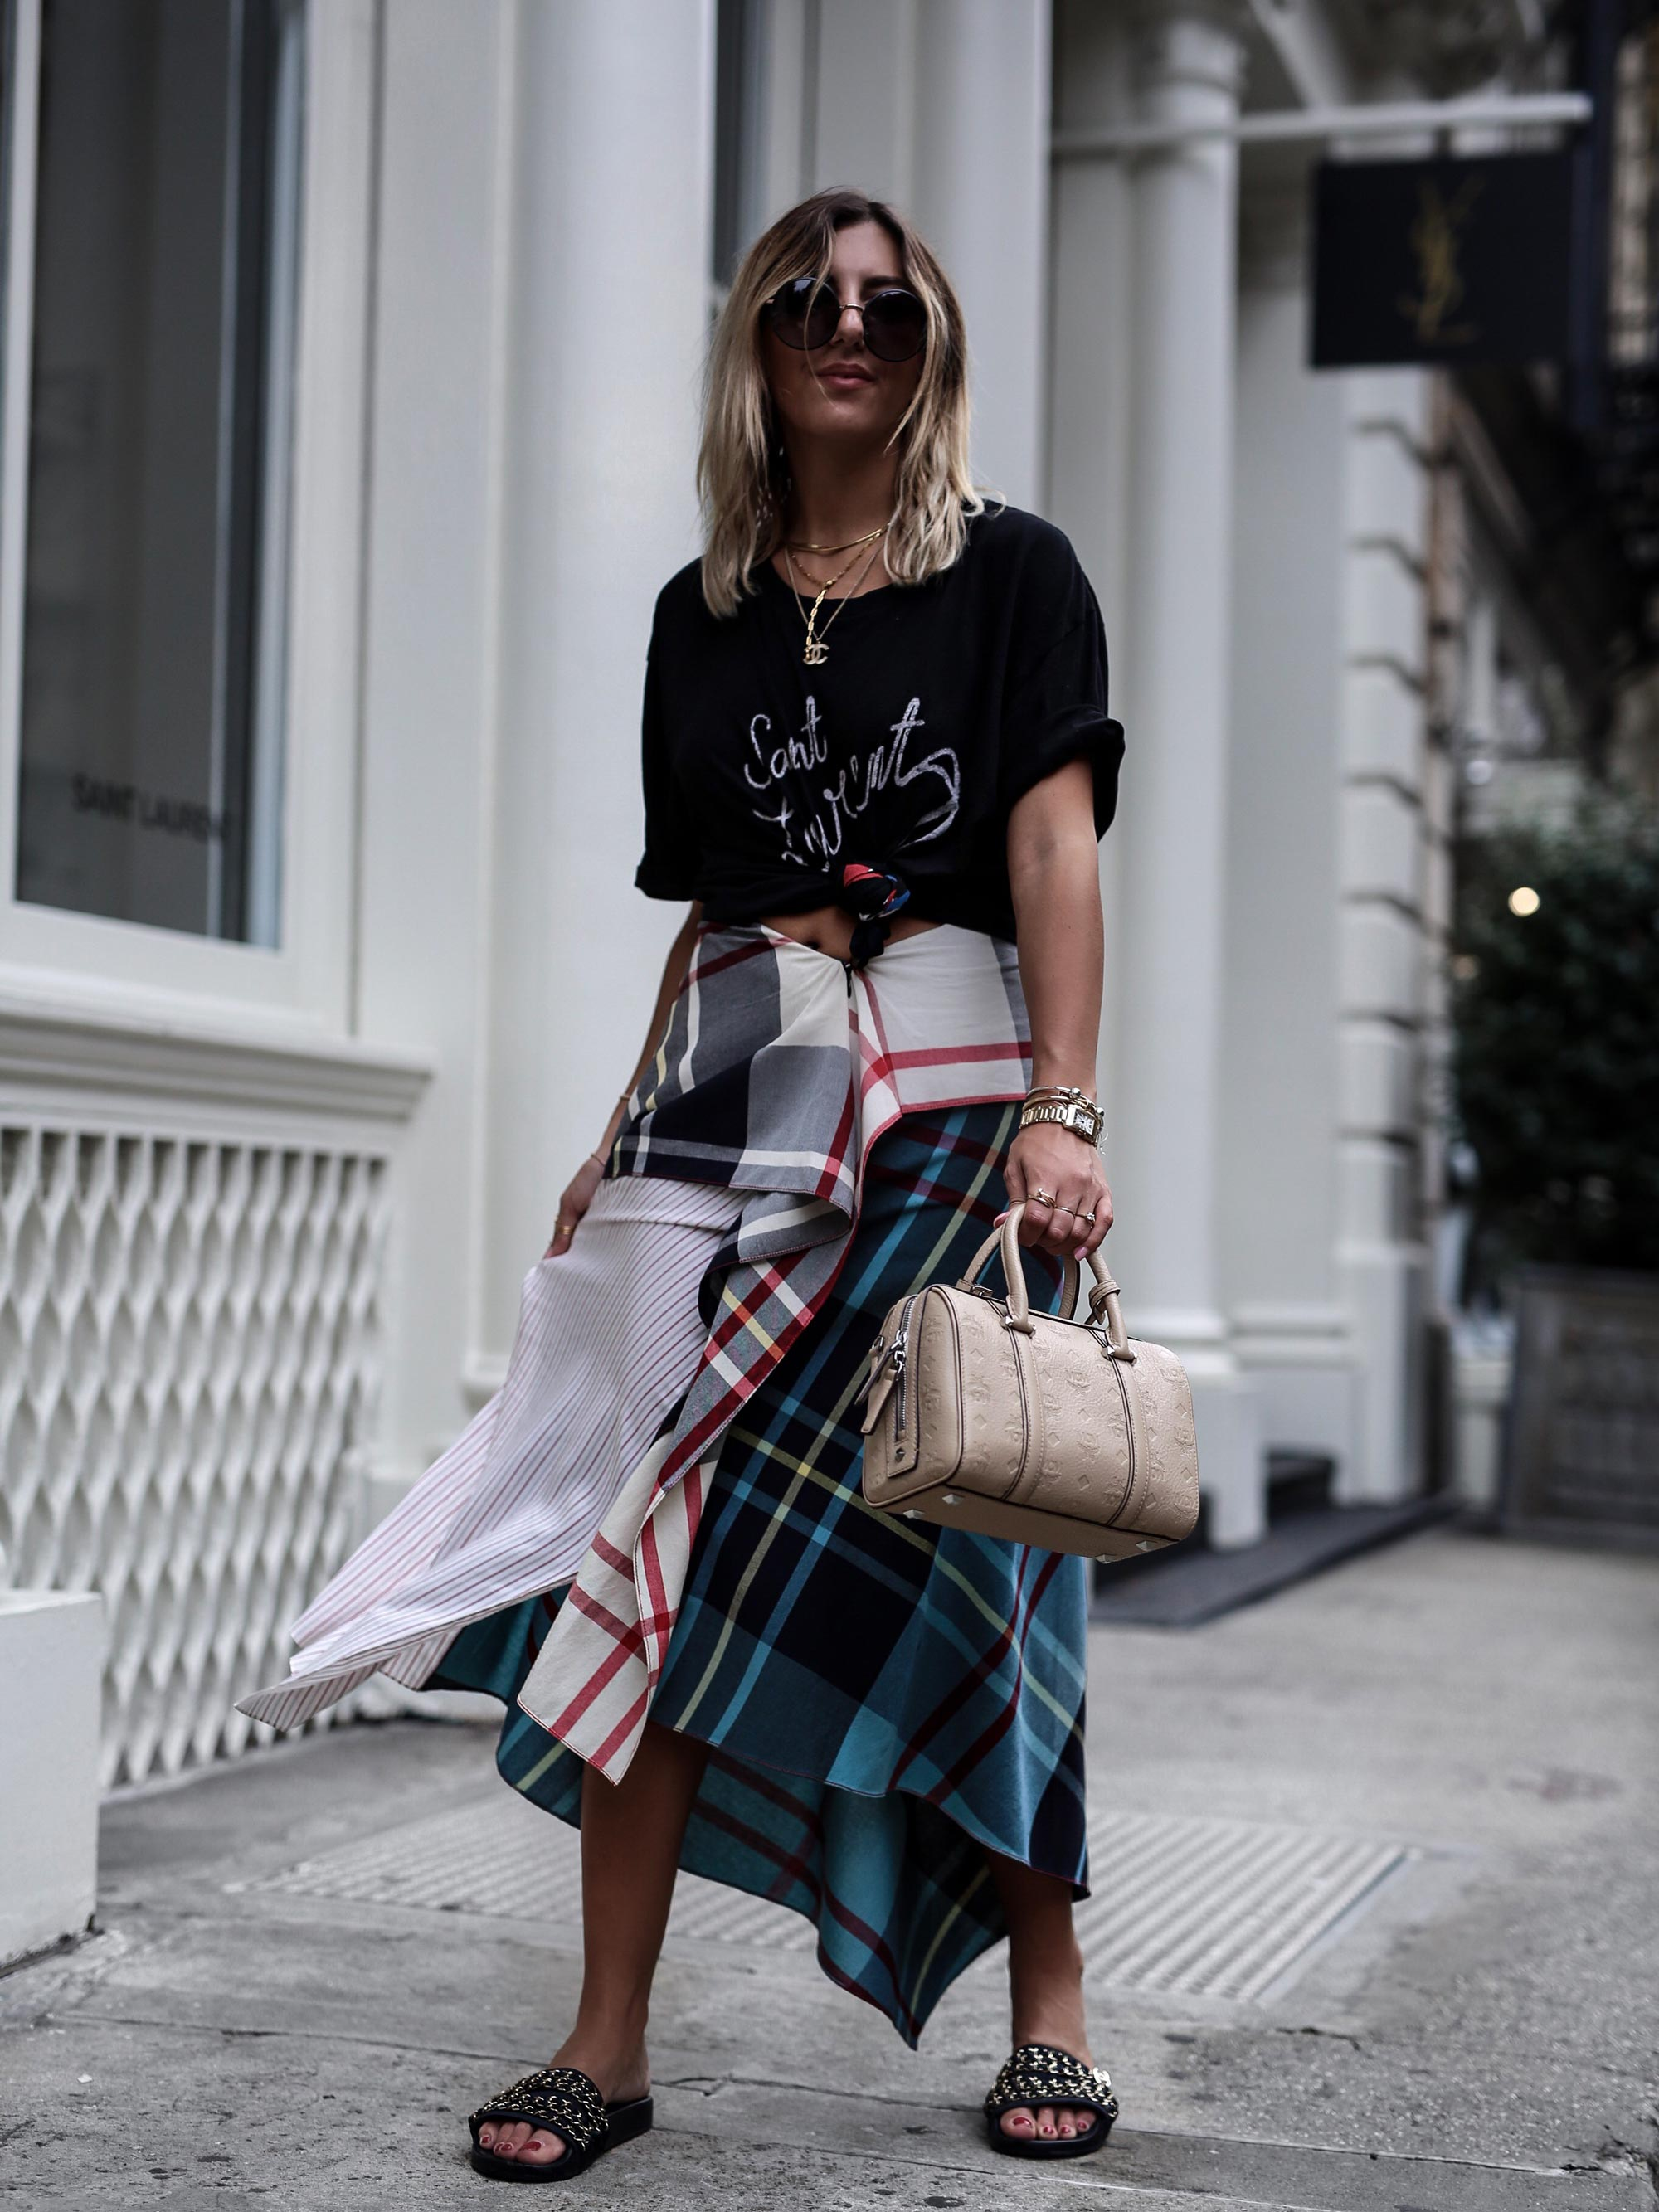 Jwanderson_skirt_saint_laurent_shirt_mcm_bag